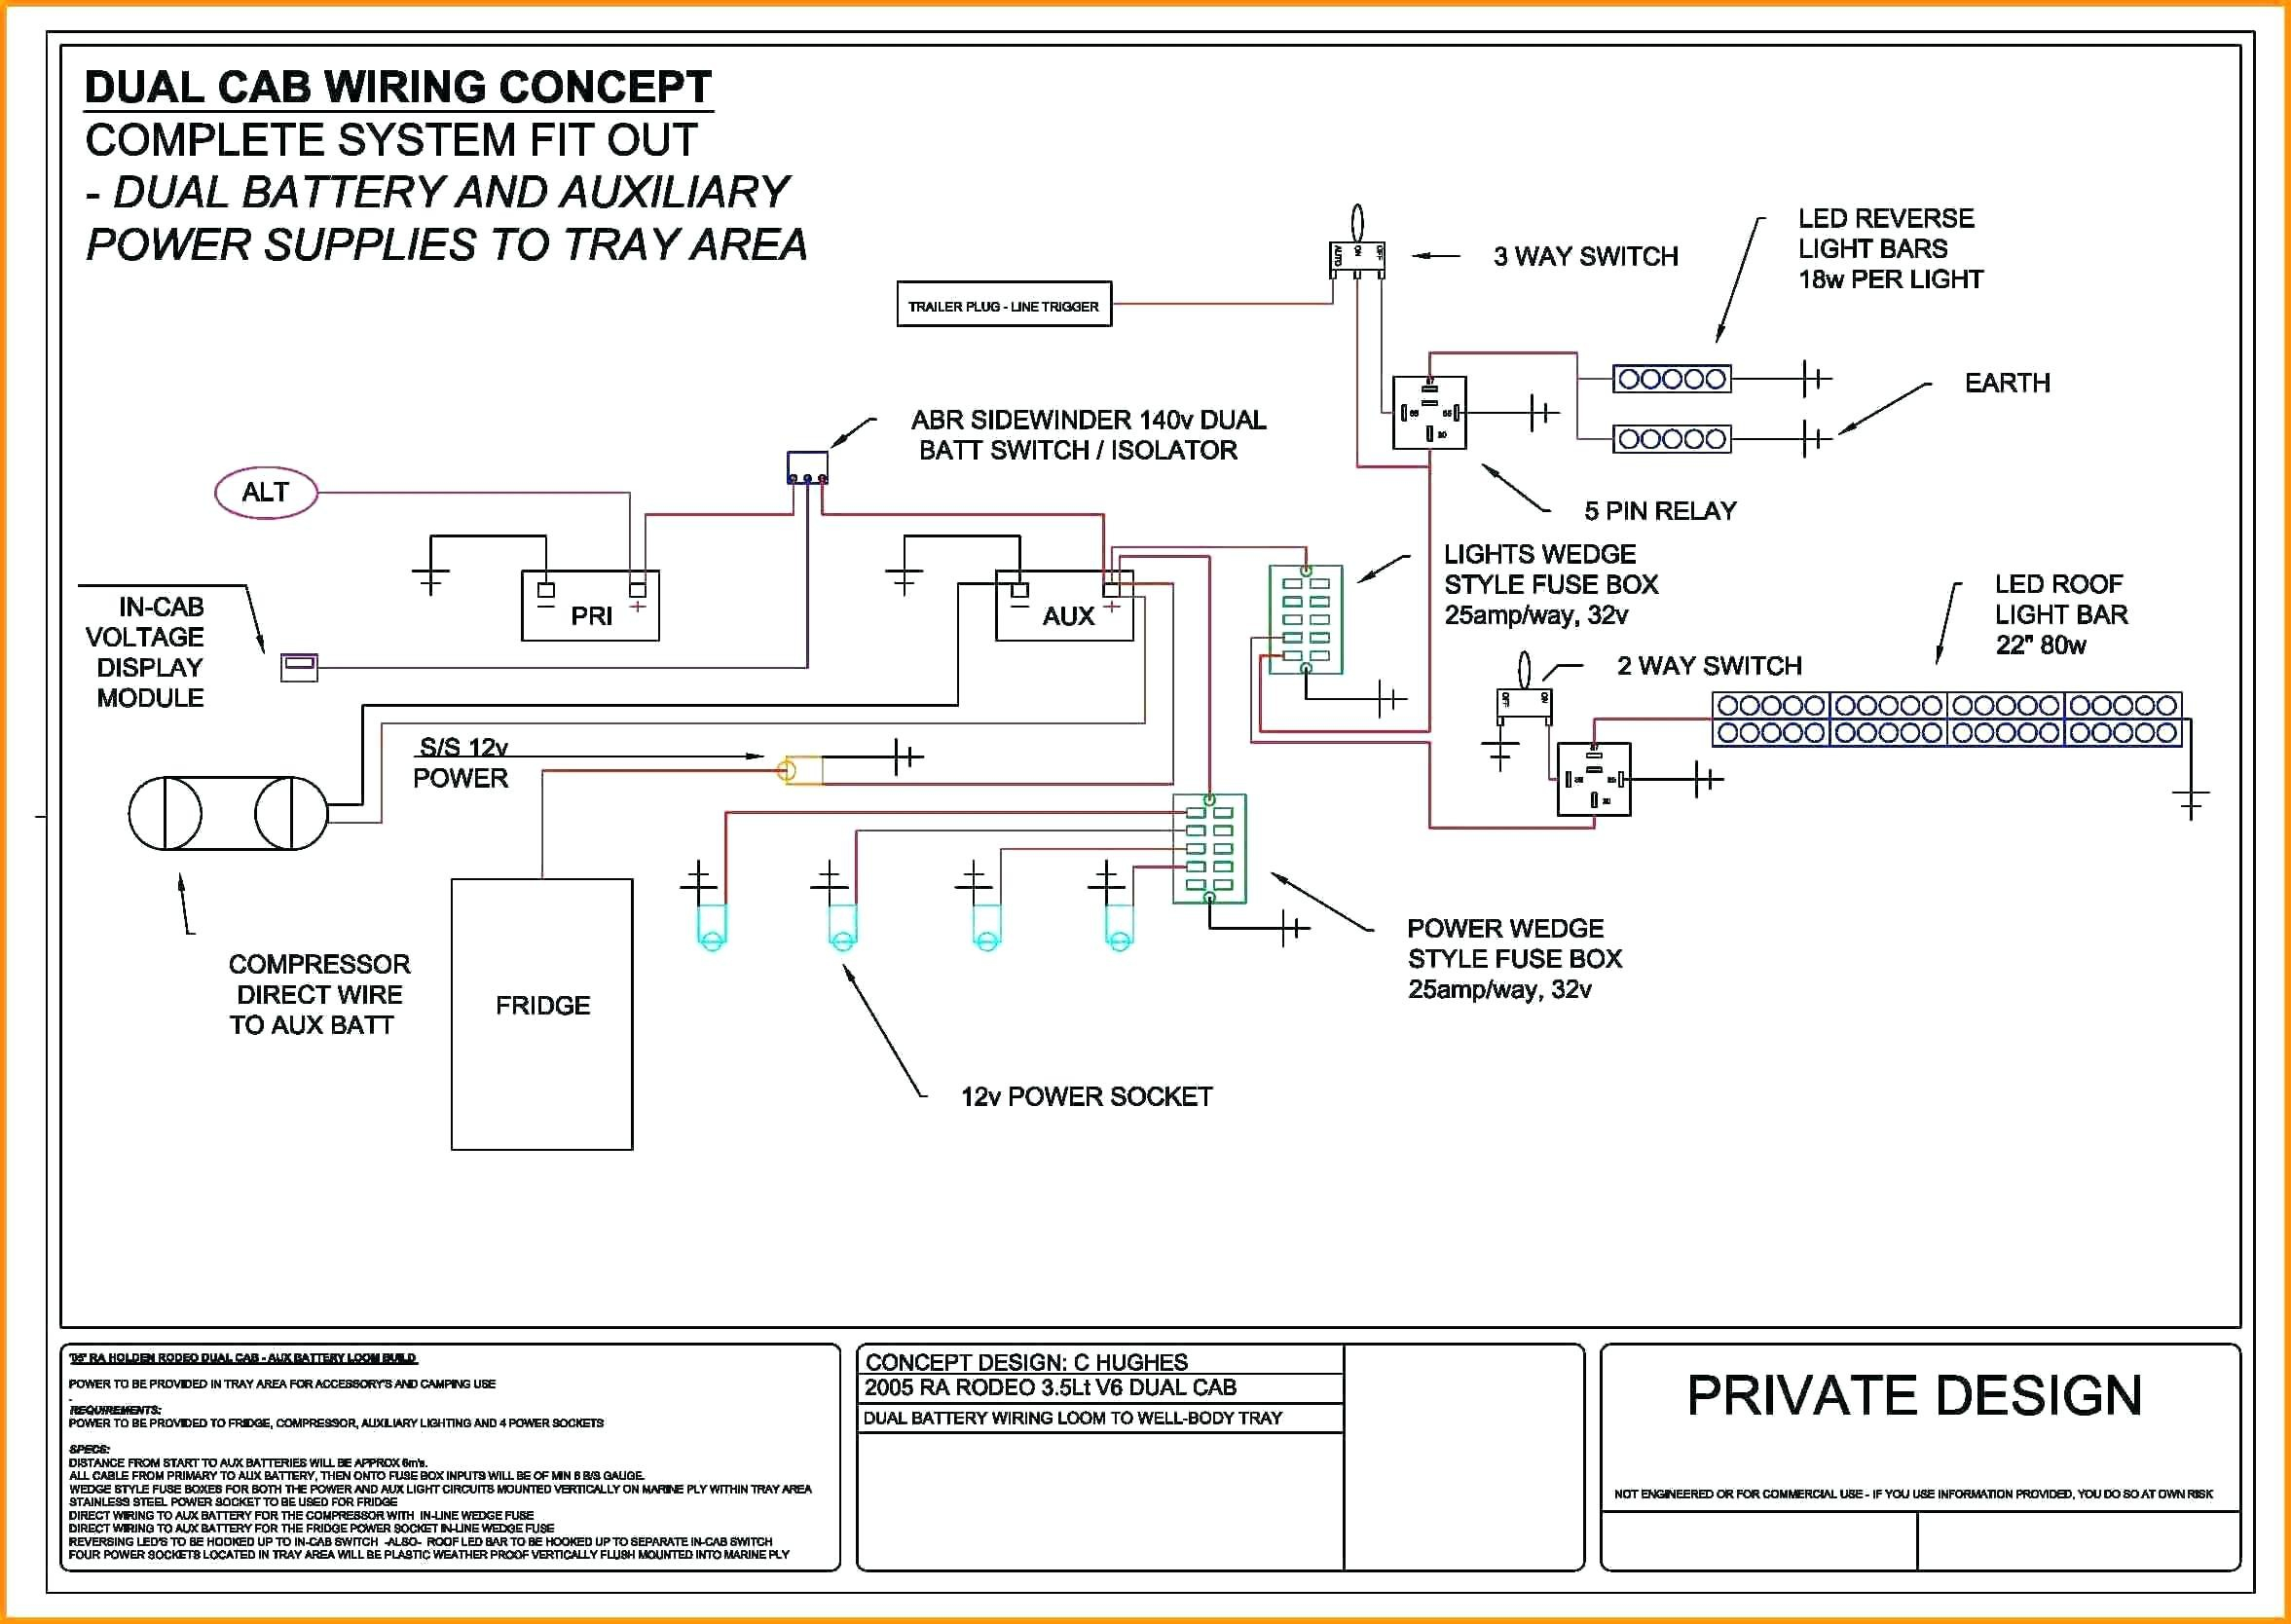 ceiling mount occupancy sensor wiring diagram Download-Ceiling Mounted Occupancy Sensor Wiring Diagram Solutions 13 7-m